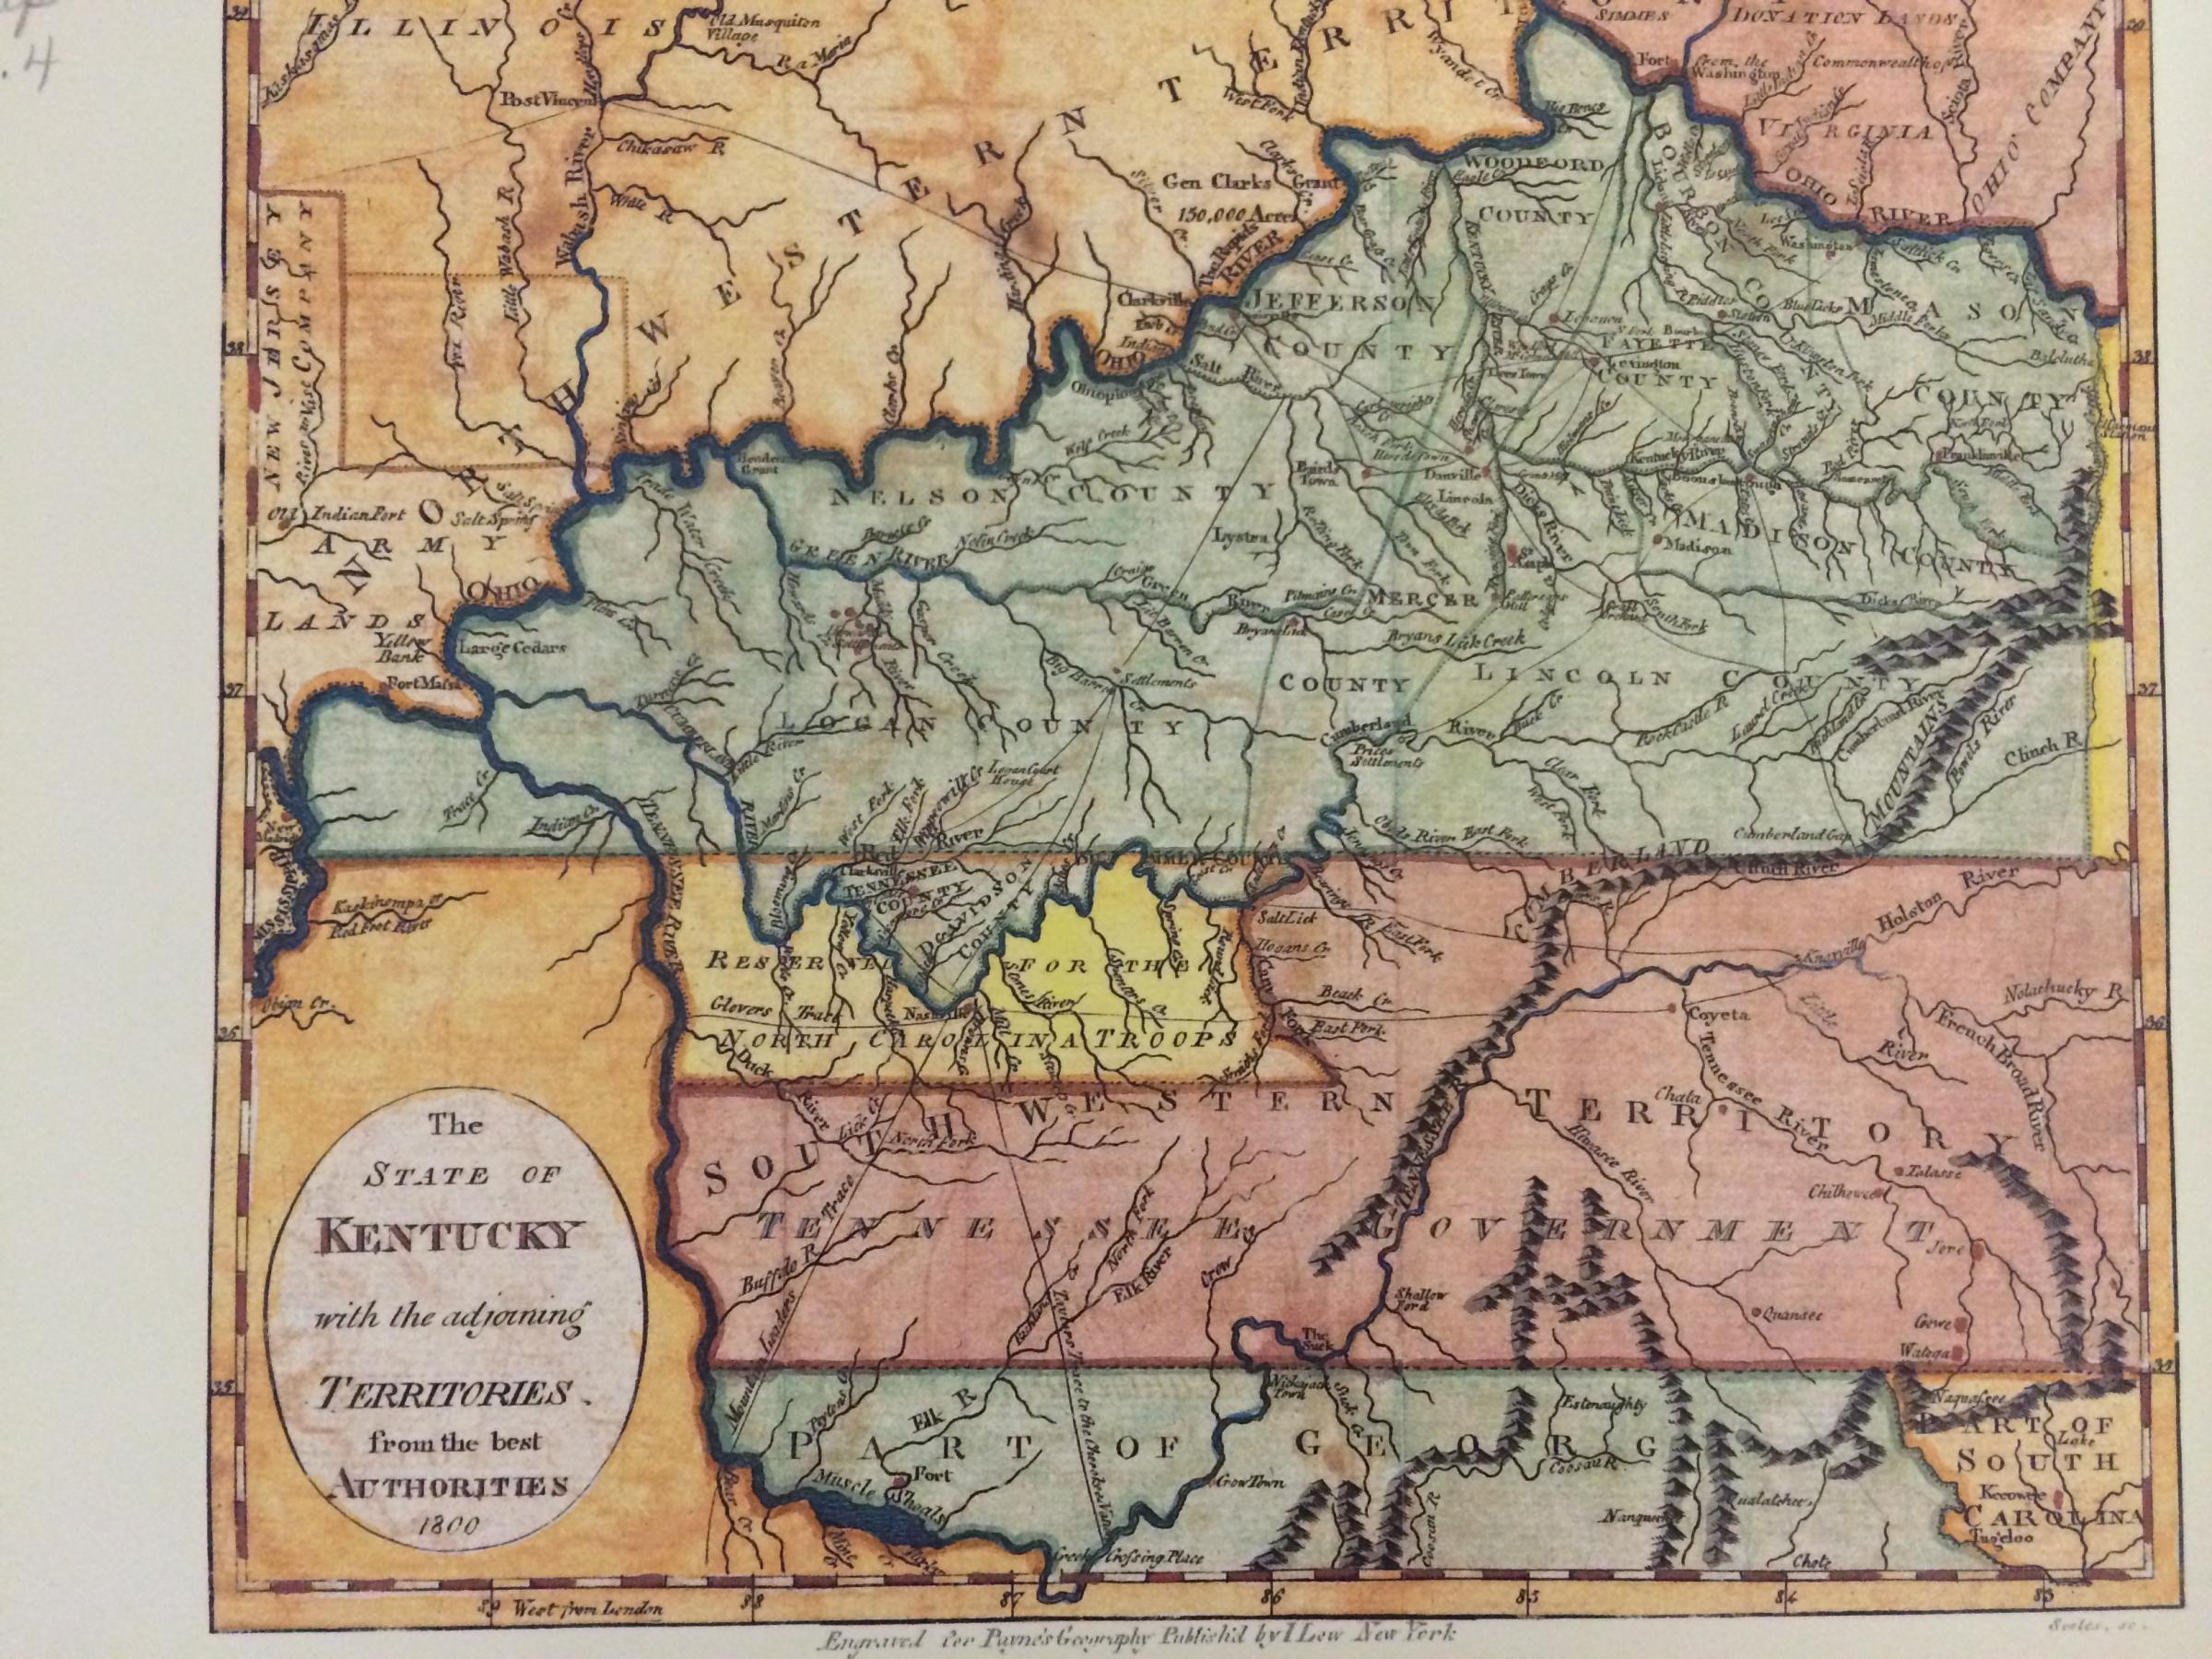 Kentucky Map Counties And Cities%0A Slideshow   Historic Maps of the Four Rivers Region WKMS